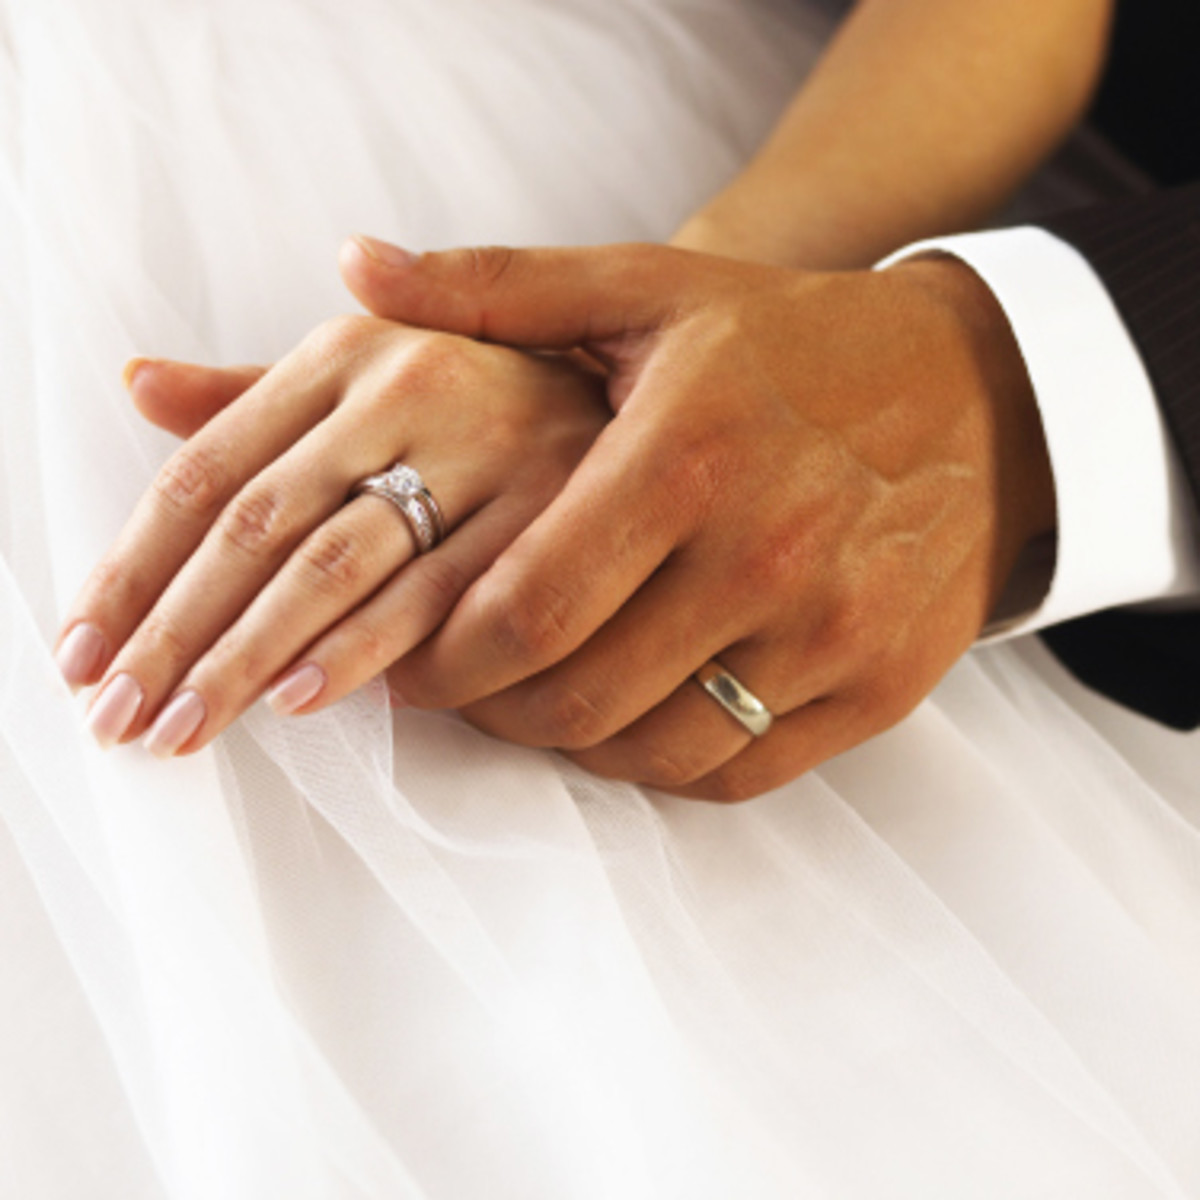 The Tradition of the Wedding Ring